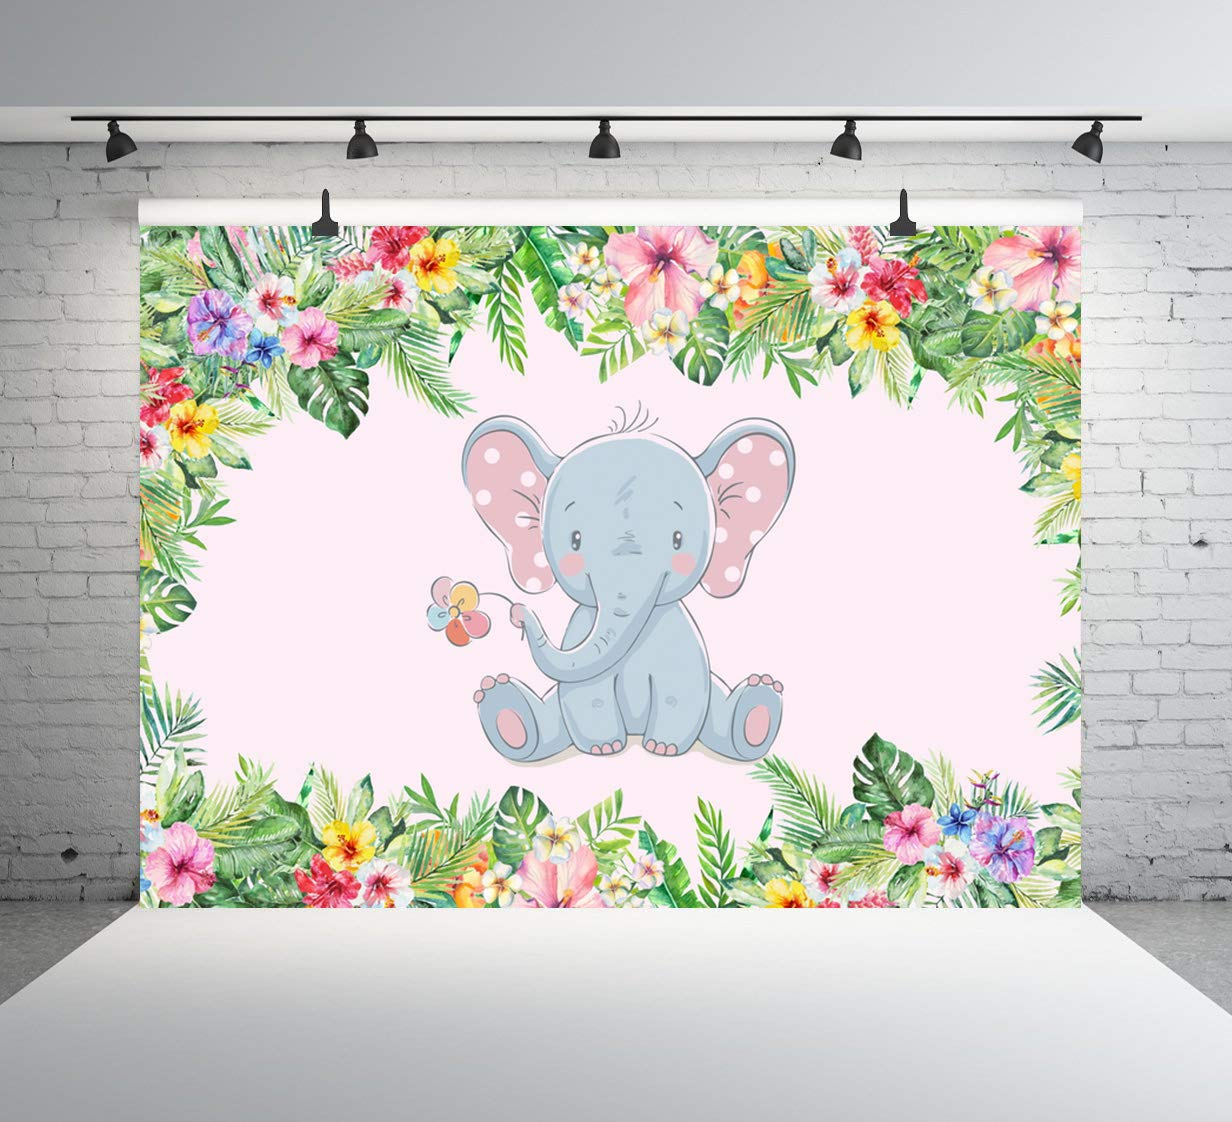 Elephant Backdrop Animal Safari Cartoon Forest Photography Backgrounds Green Jungle Leaves Photo for Newborn Boy Child Portraits Baby Shower Party Photo Booth Studio Backdrop 10x7FT E00T10336